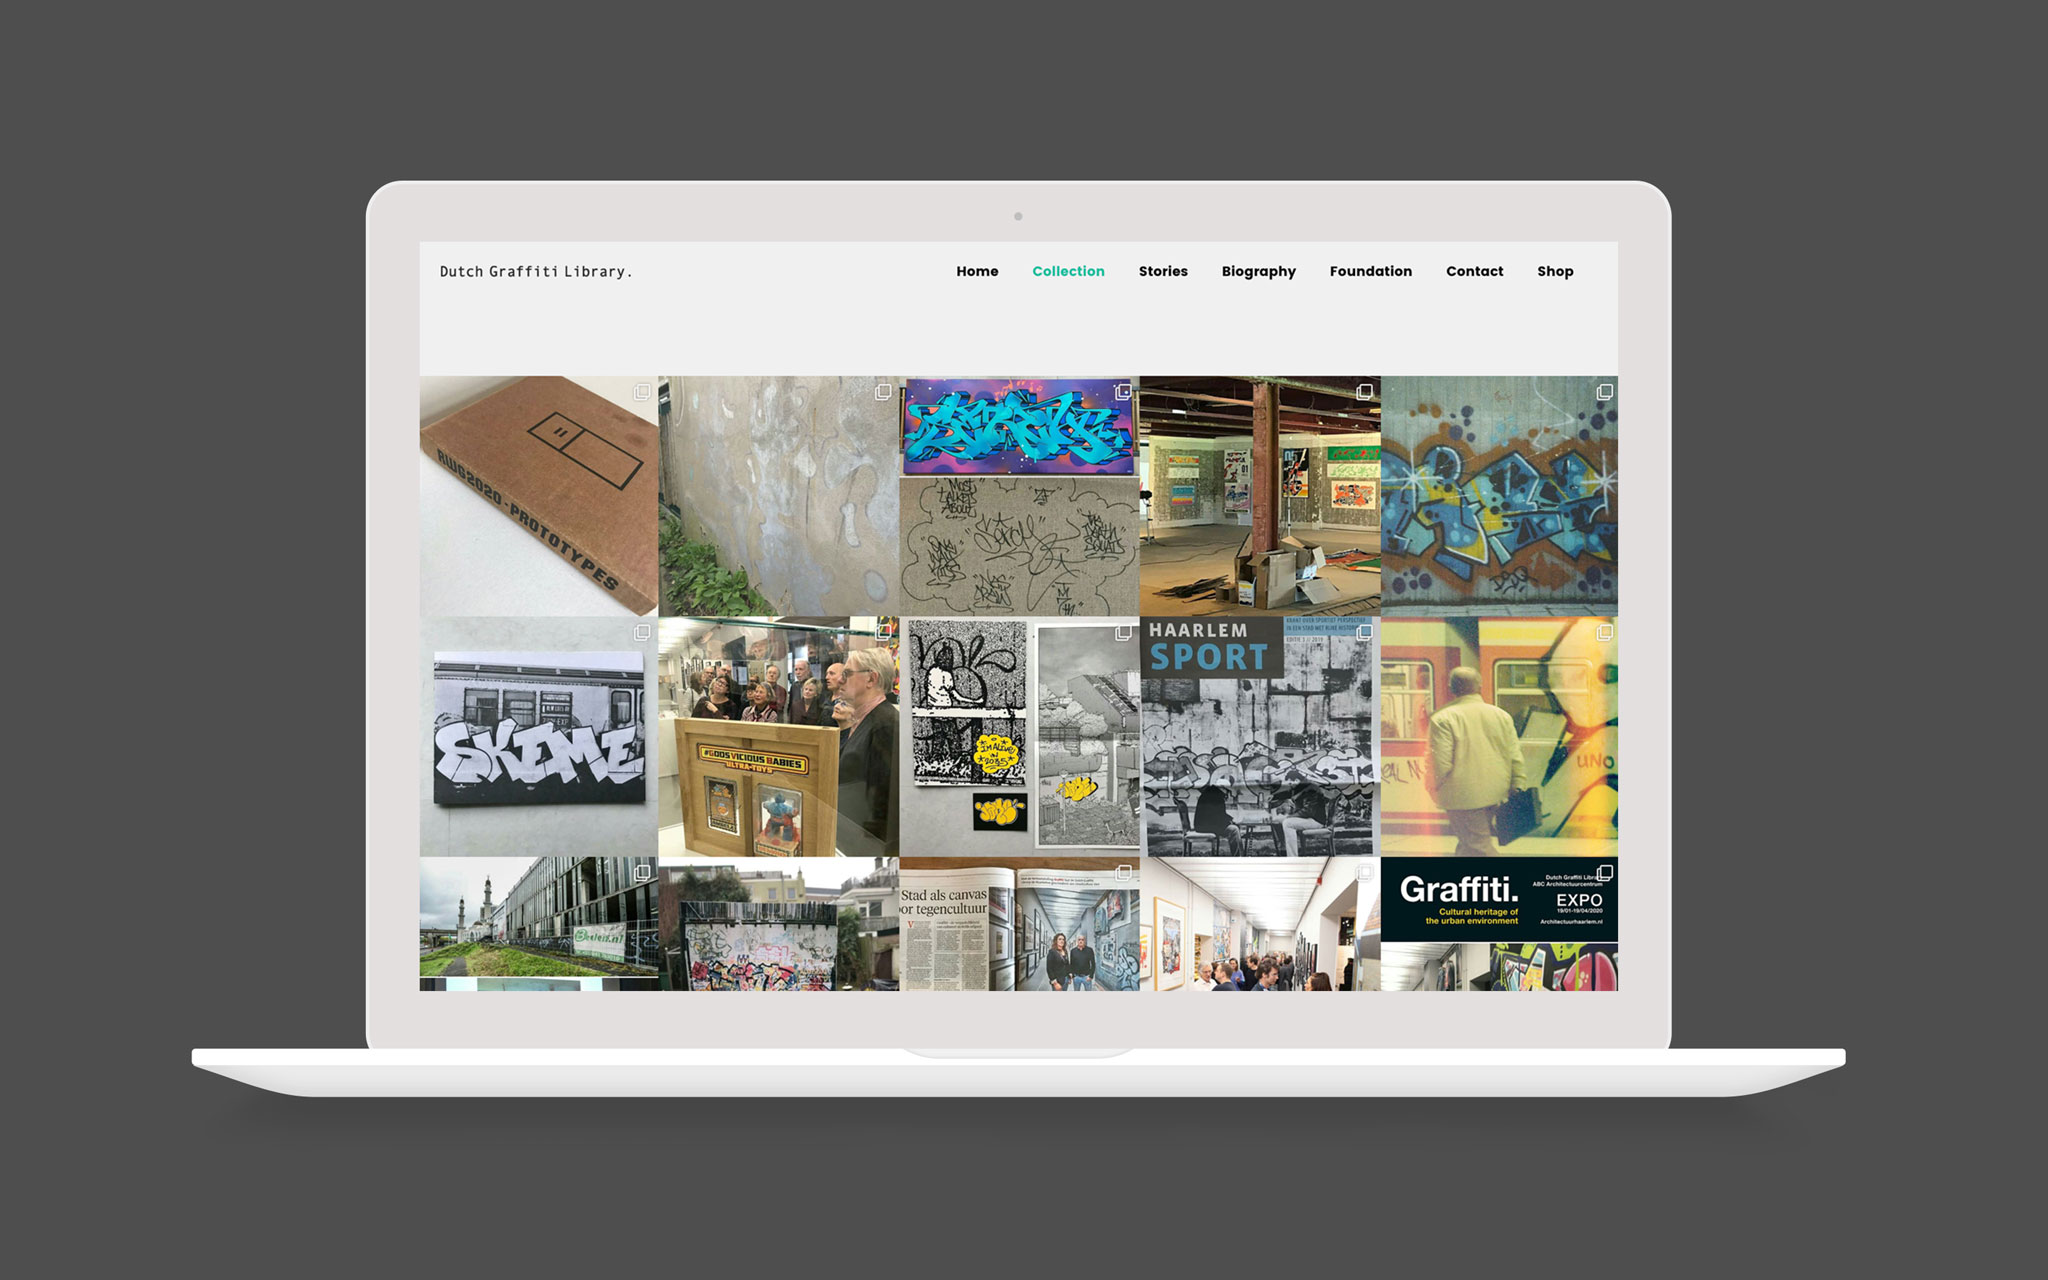 Dutch Graffiti Library collection pagina Instagram feed